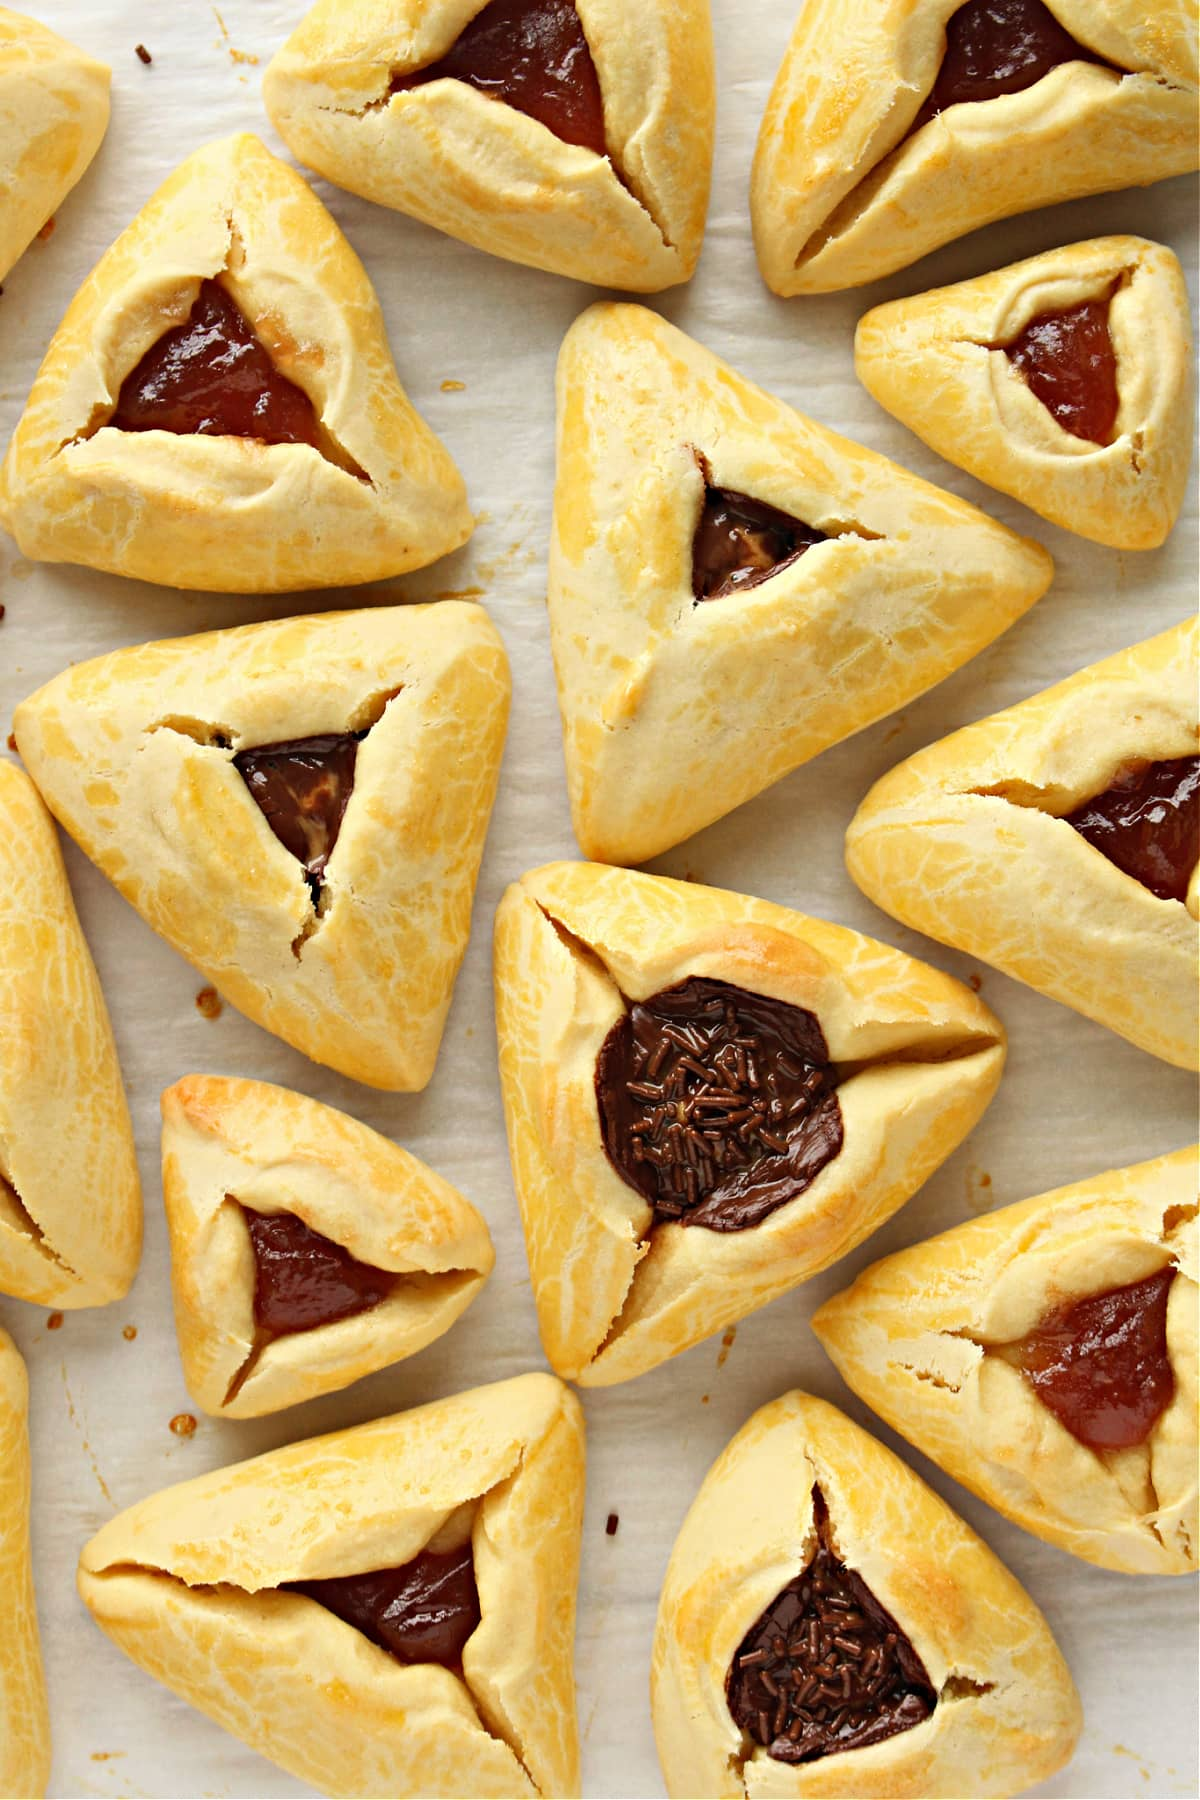 Triangle cookies with filled center pockets with jam or chocolate.